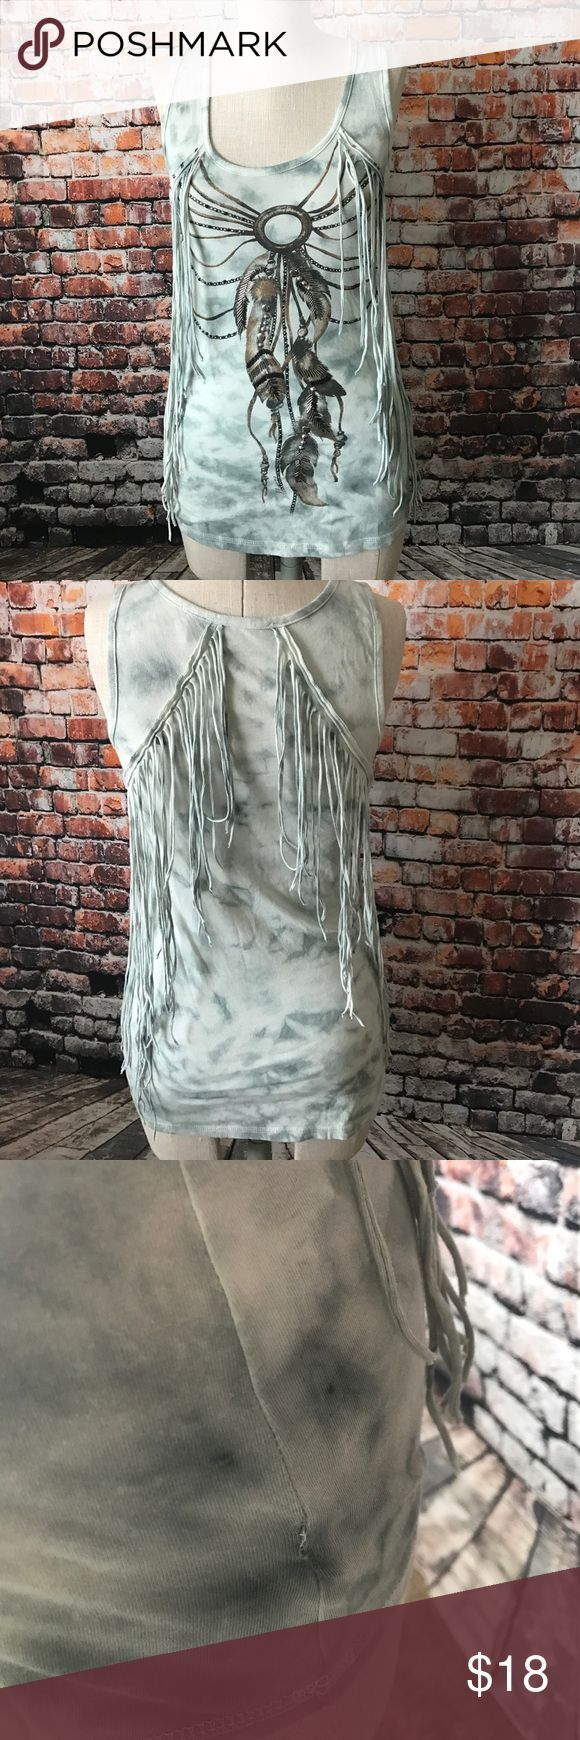 Miss me dream catcher fringe top Good condition, it has been altered after a little hole, please check pictures, other than that is in good condition. Offers are welcome, no trades! Miss Me Tops Tees - Short Sleeve